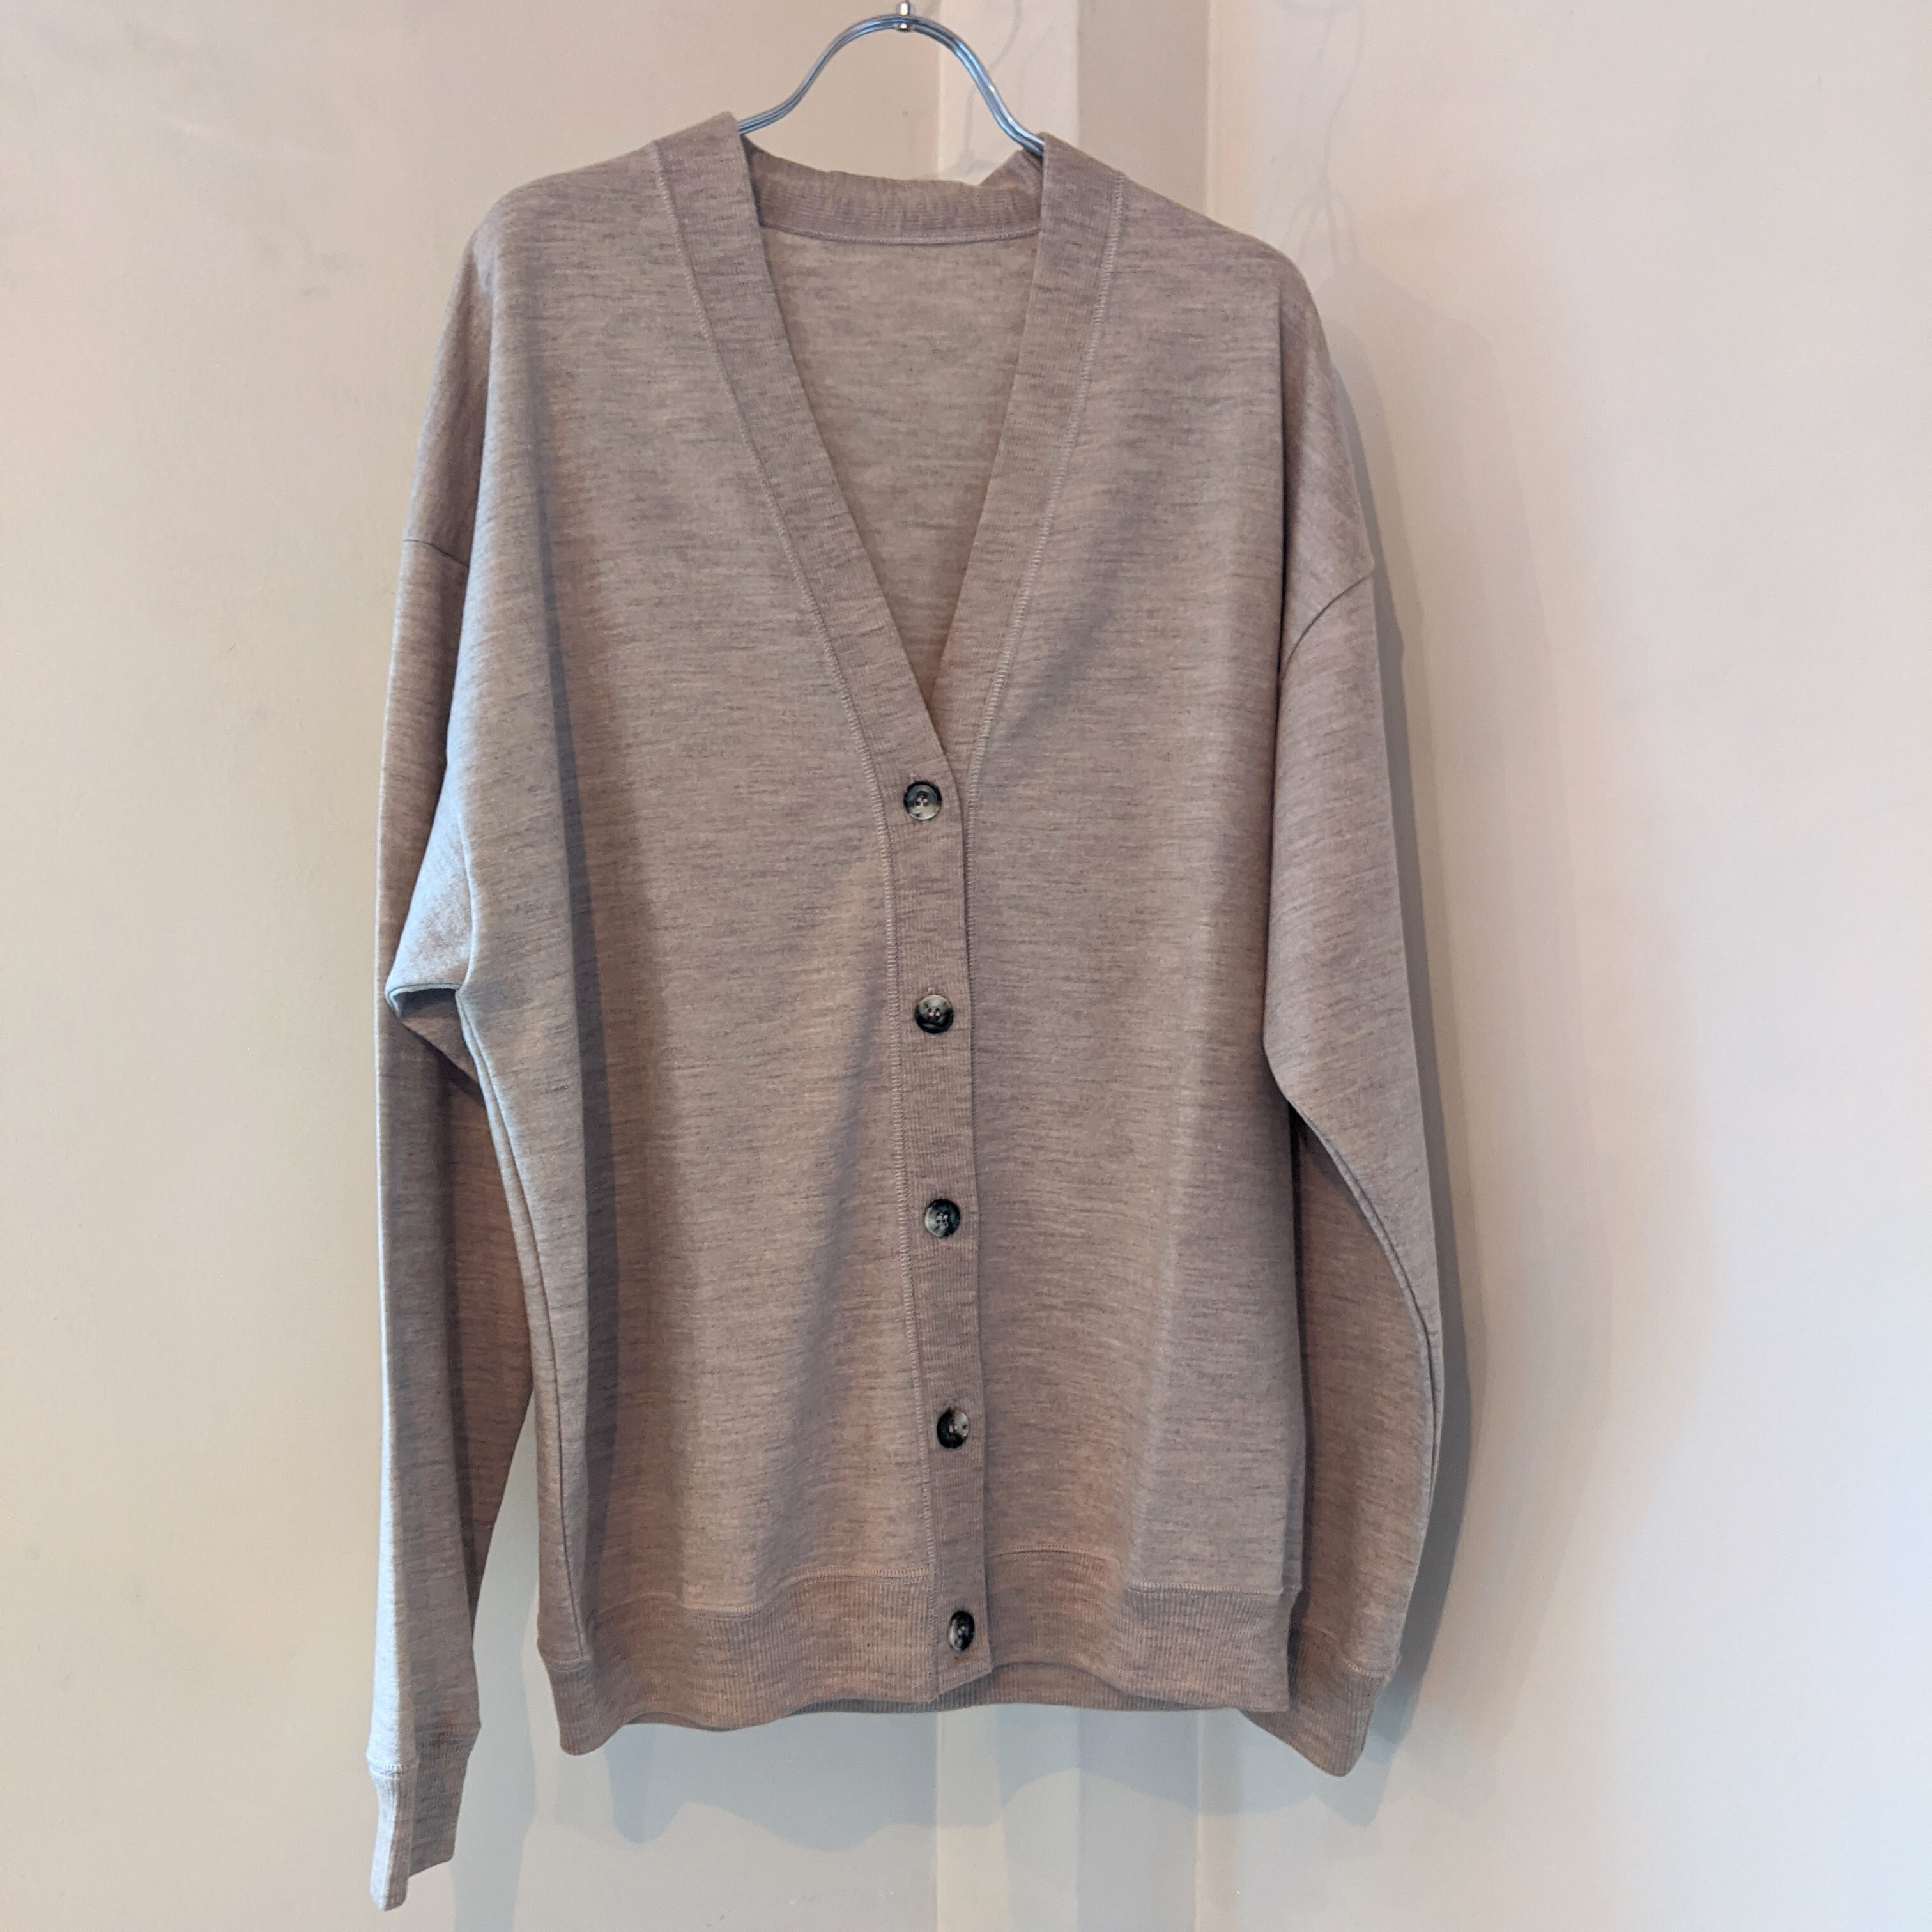 【 habille 】アビエ / washable wool jersey v-neck cardigan/ カーディガン / top beige トップベージュ/カットソー